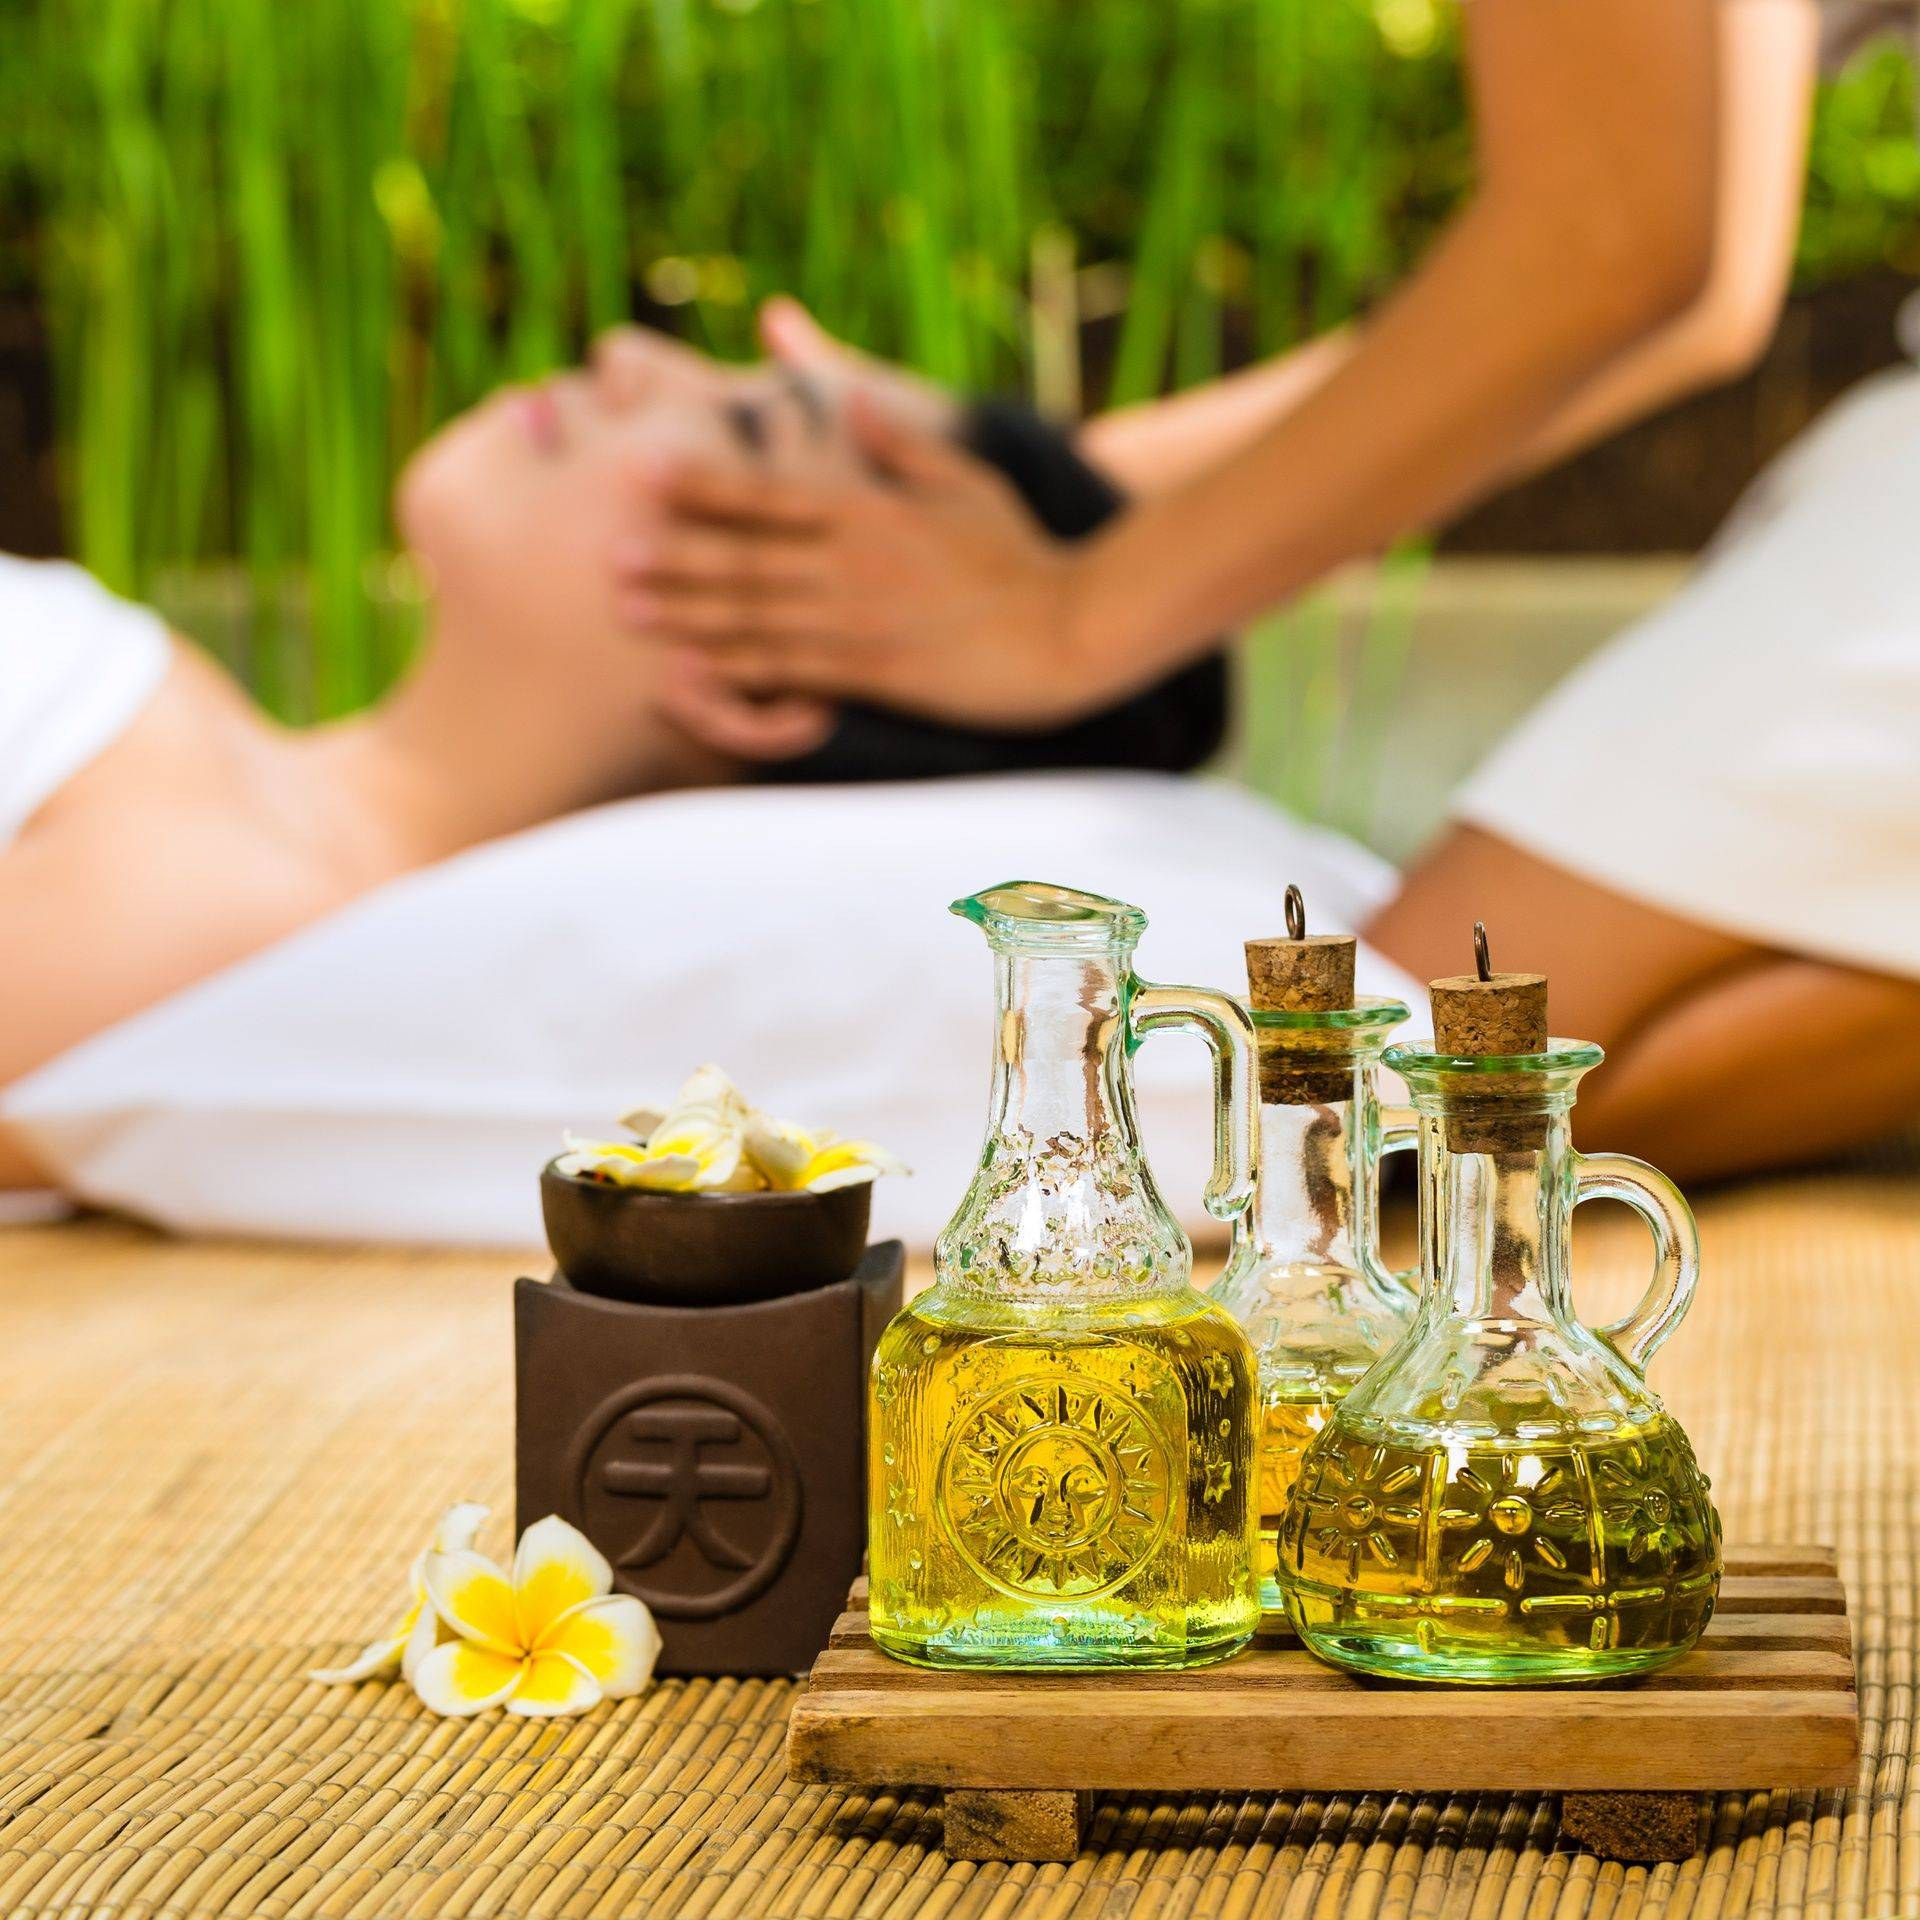 Oils for massage with a tranquil theme